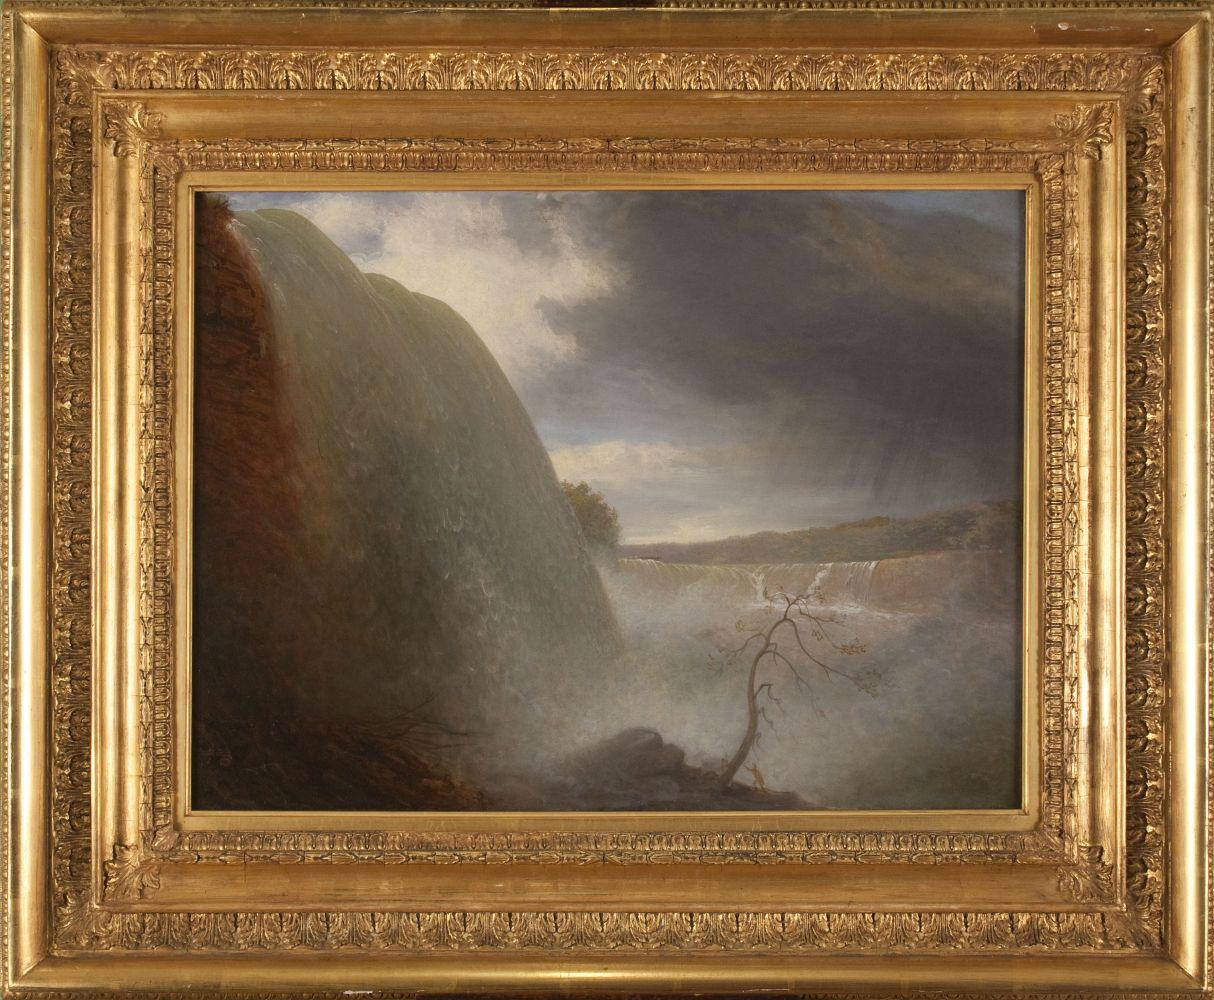 Rembrandt Peale (1778–1860), Falls of Niagara, Viewed from the American Side, 1831, oil on canvas, 18 1/4 x 24 1/8 in. (framed)